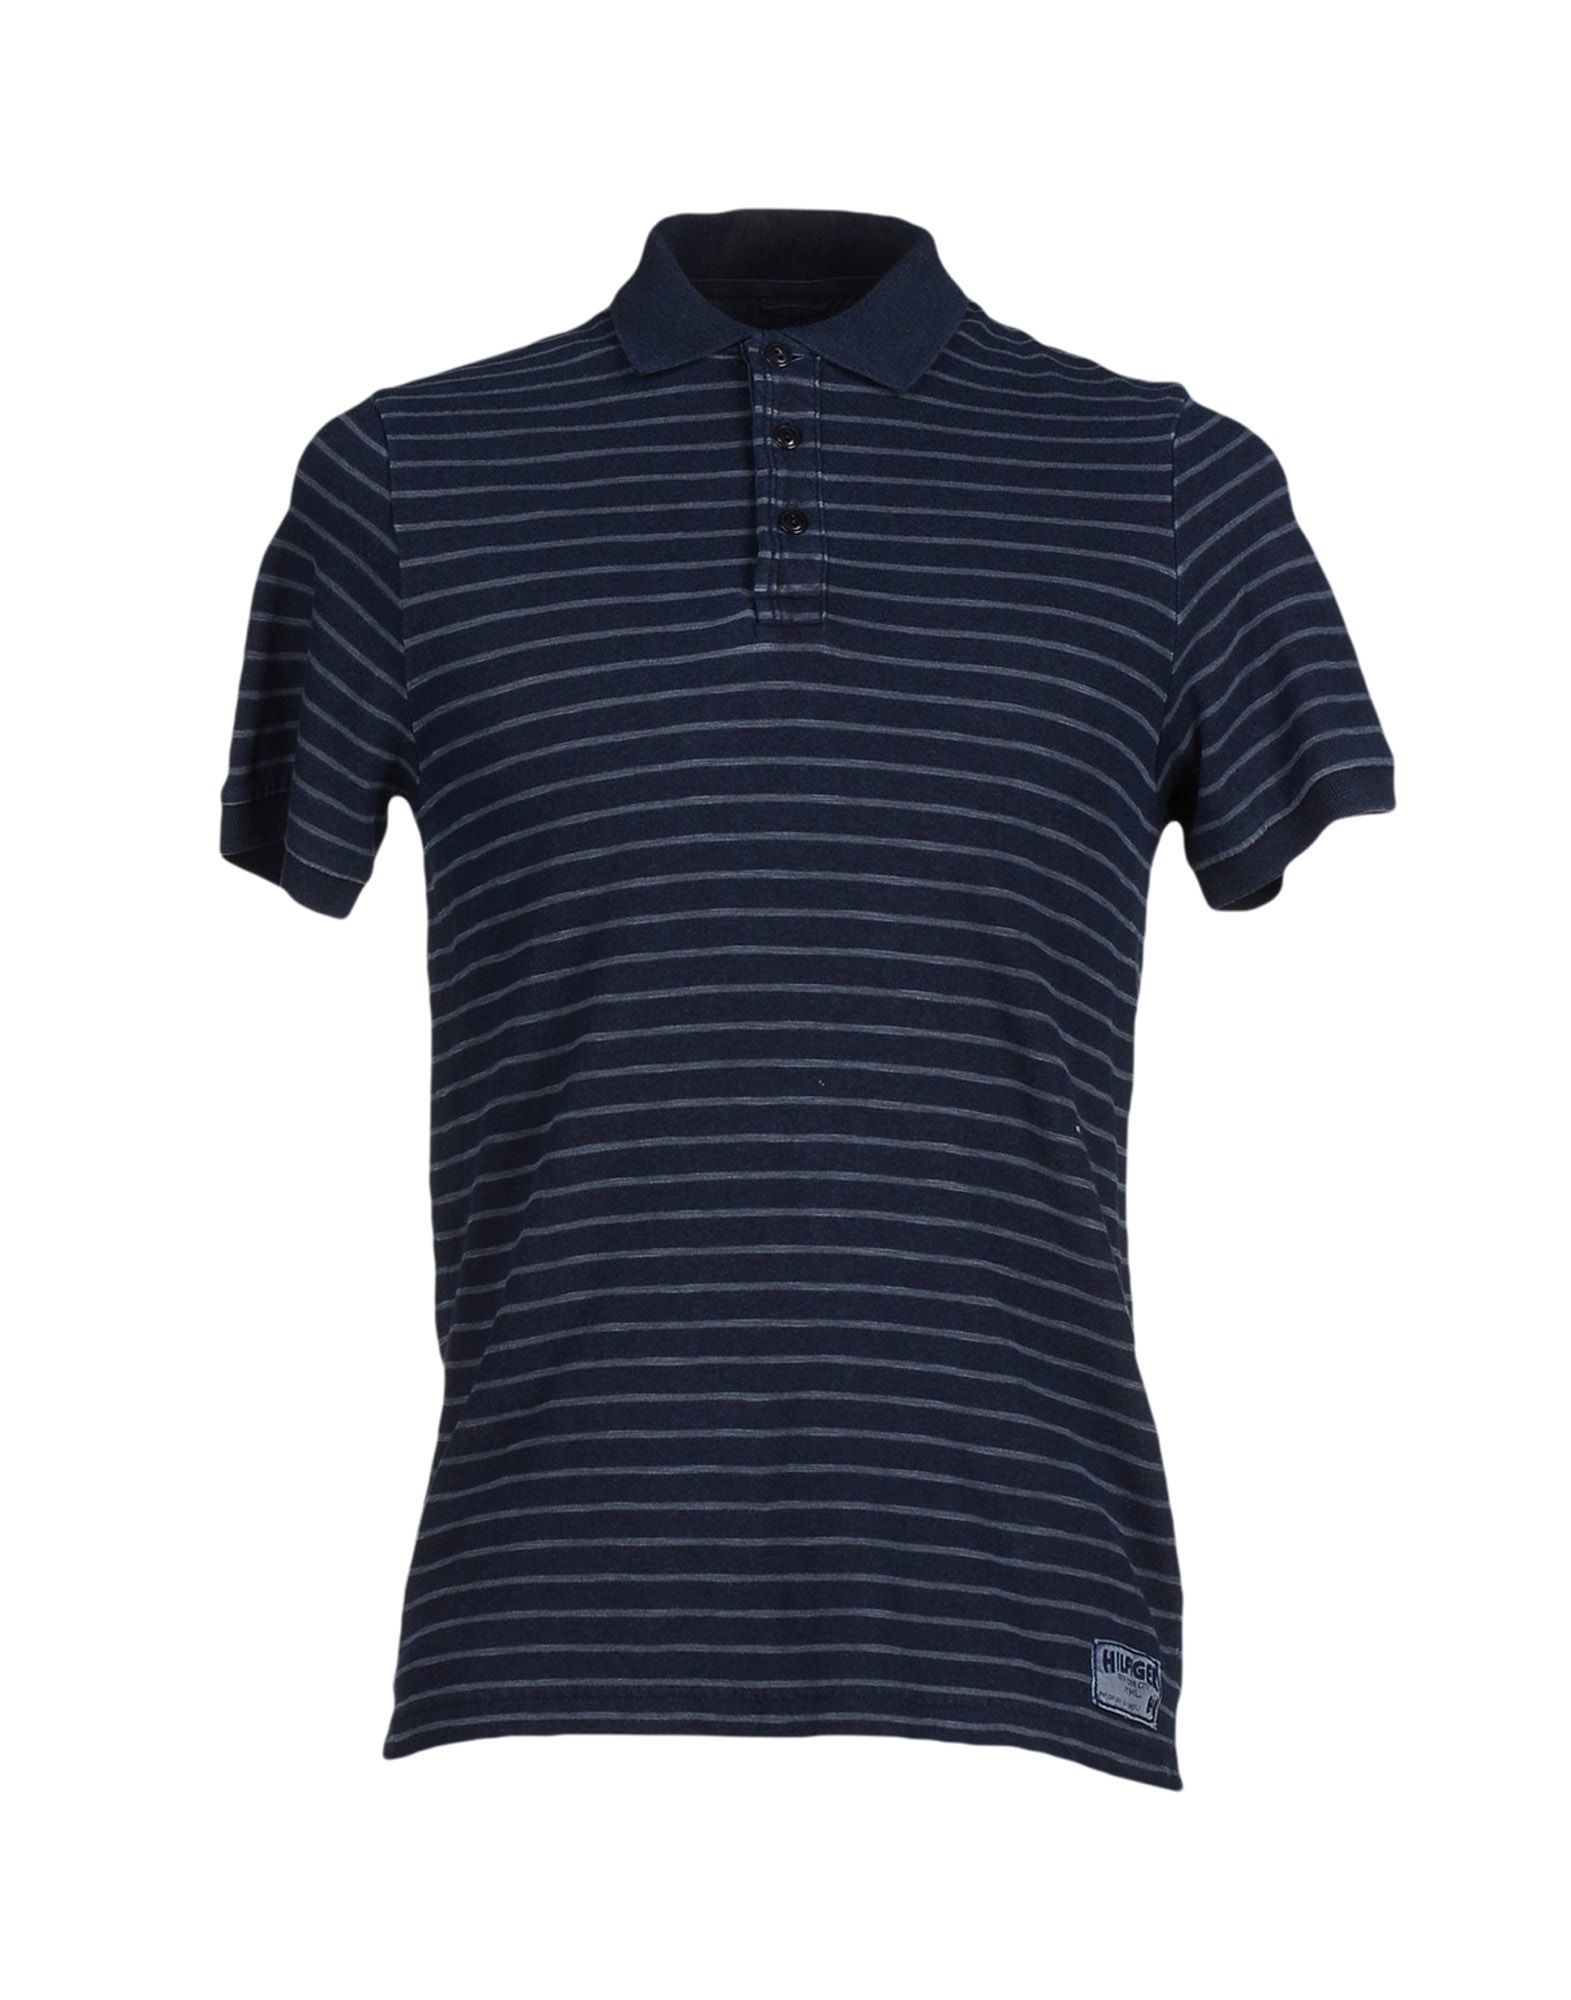 lyst tommy hilfiger polo shirt in blue for men. Black Bedroom Furniture Sets. Home Design Ideas